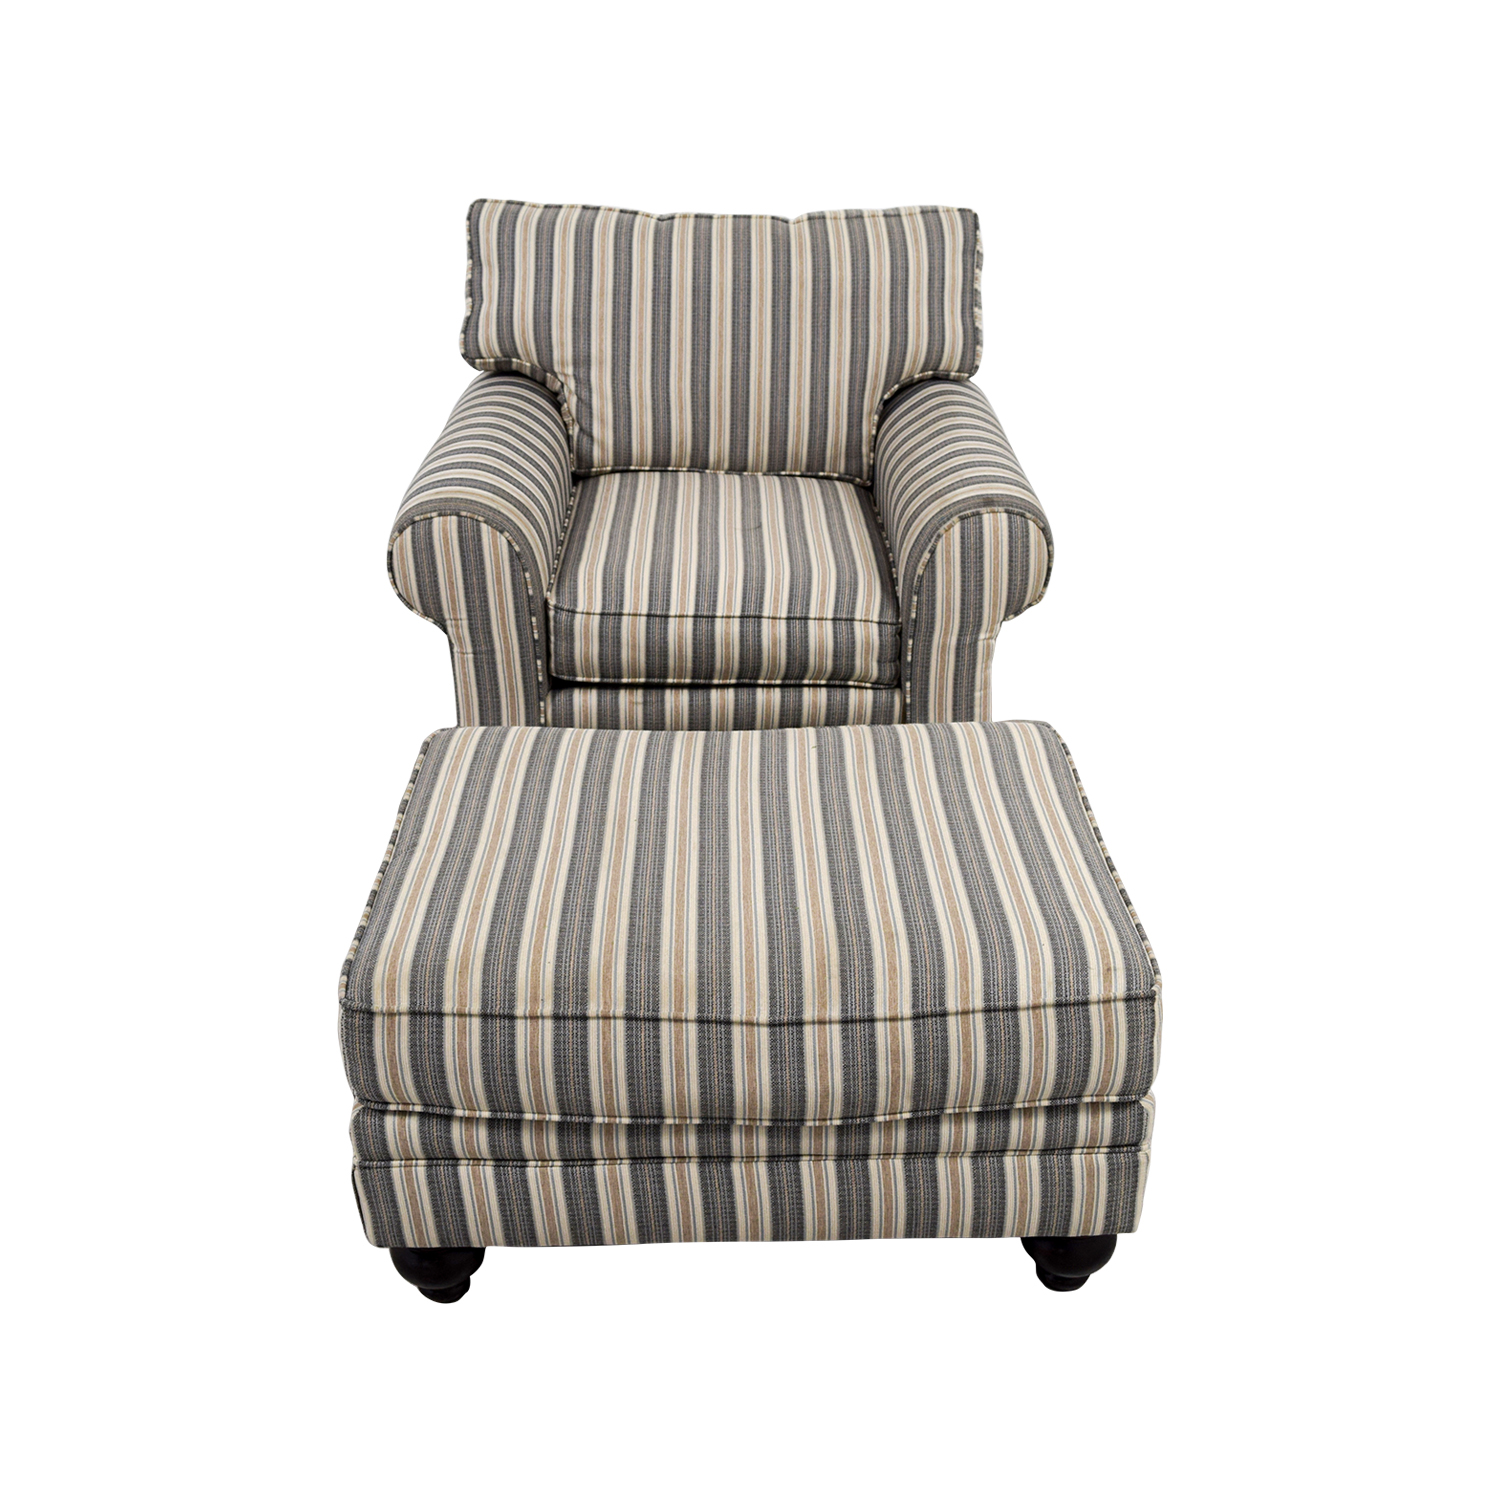 Bobs Furniture Sofa Chair with Ottoman Bobs Furniture